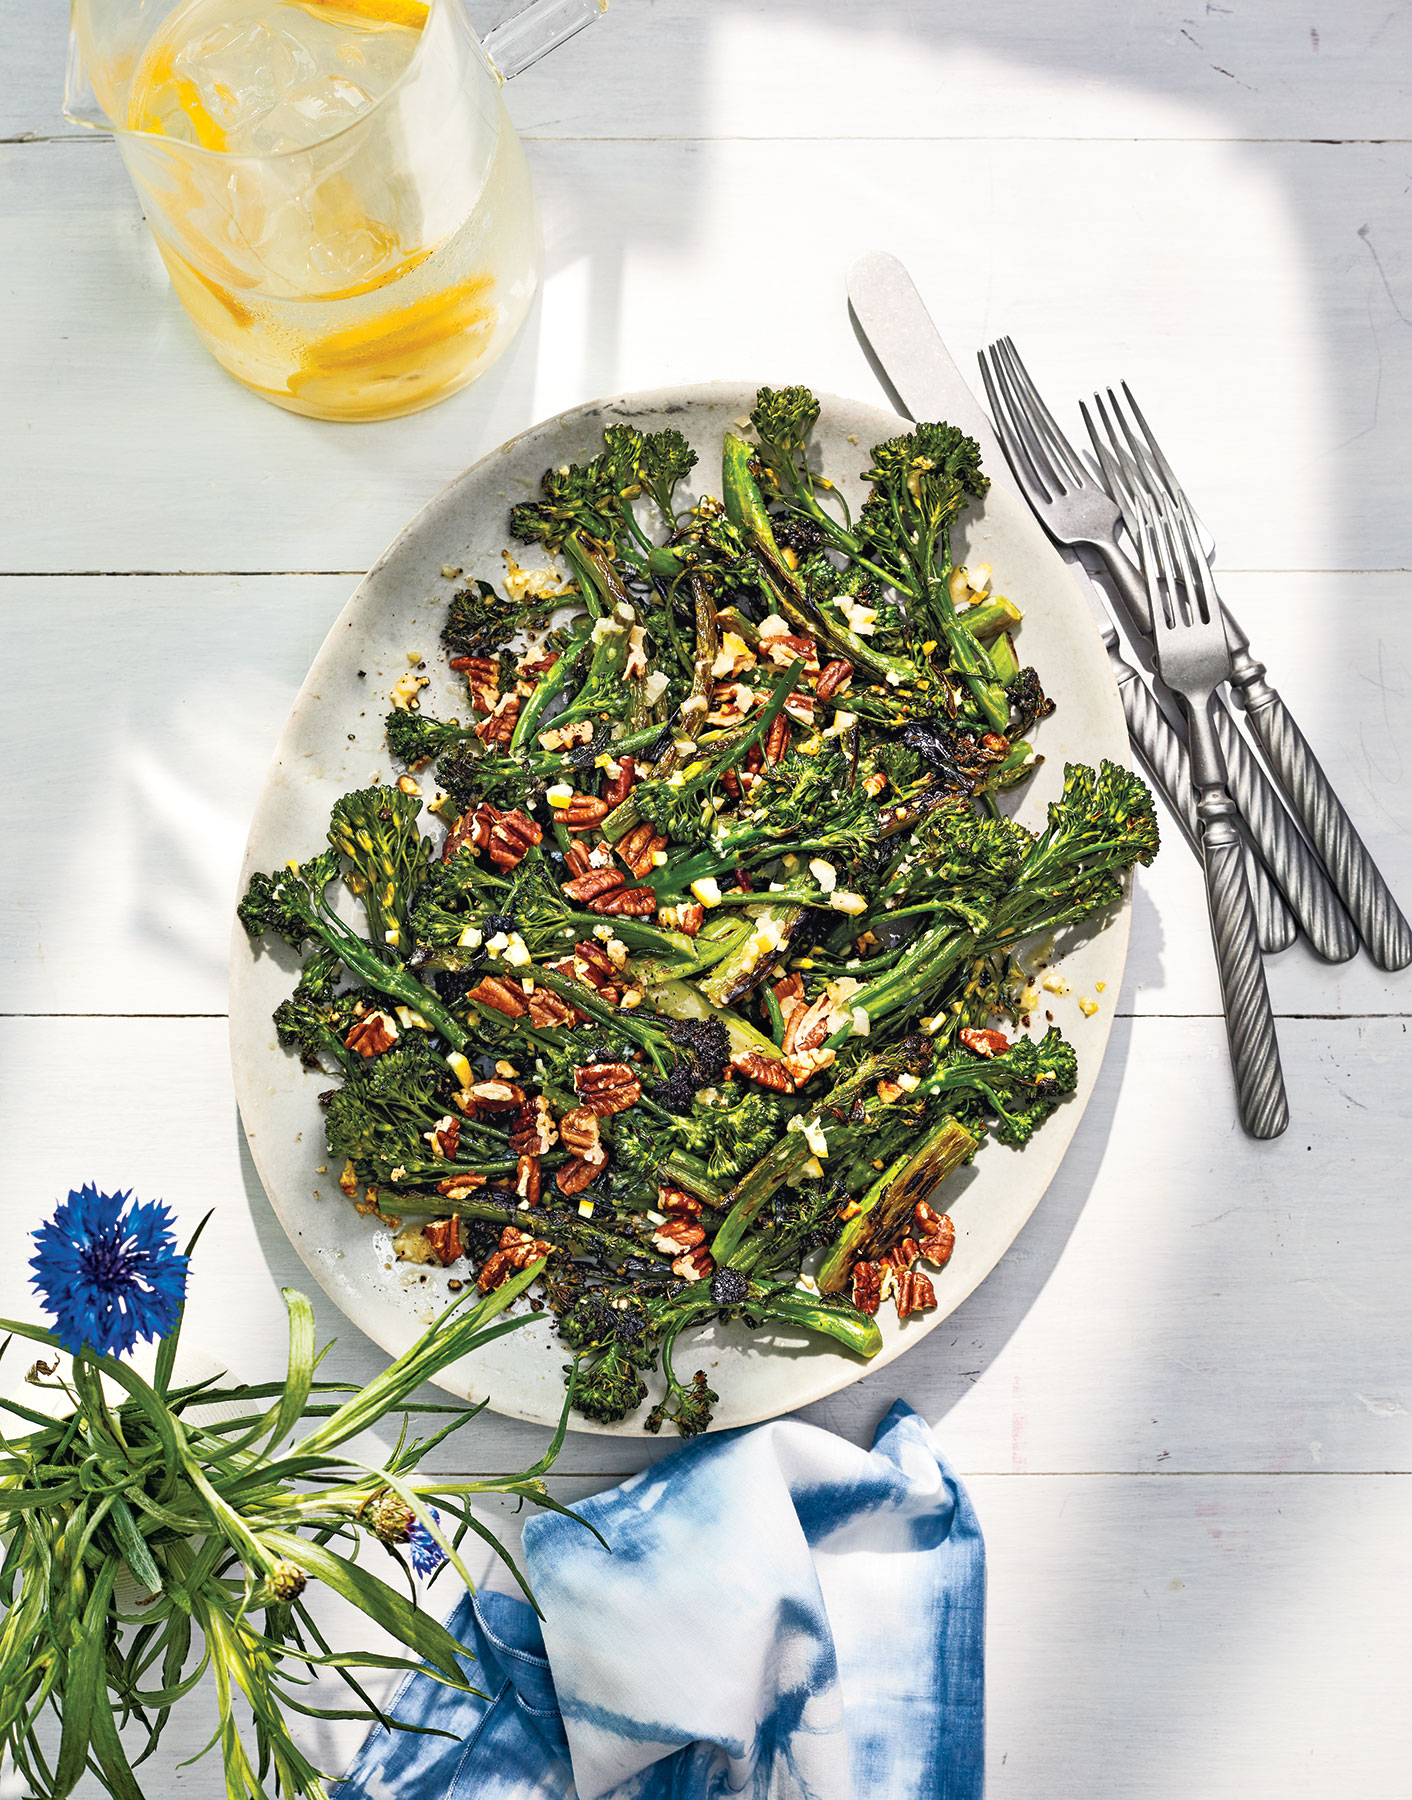 Crunchy Broccolini With Lemon and Pecans